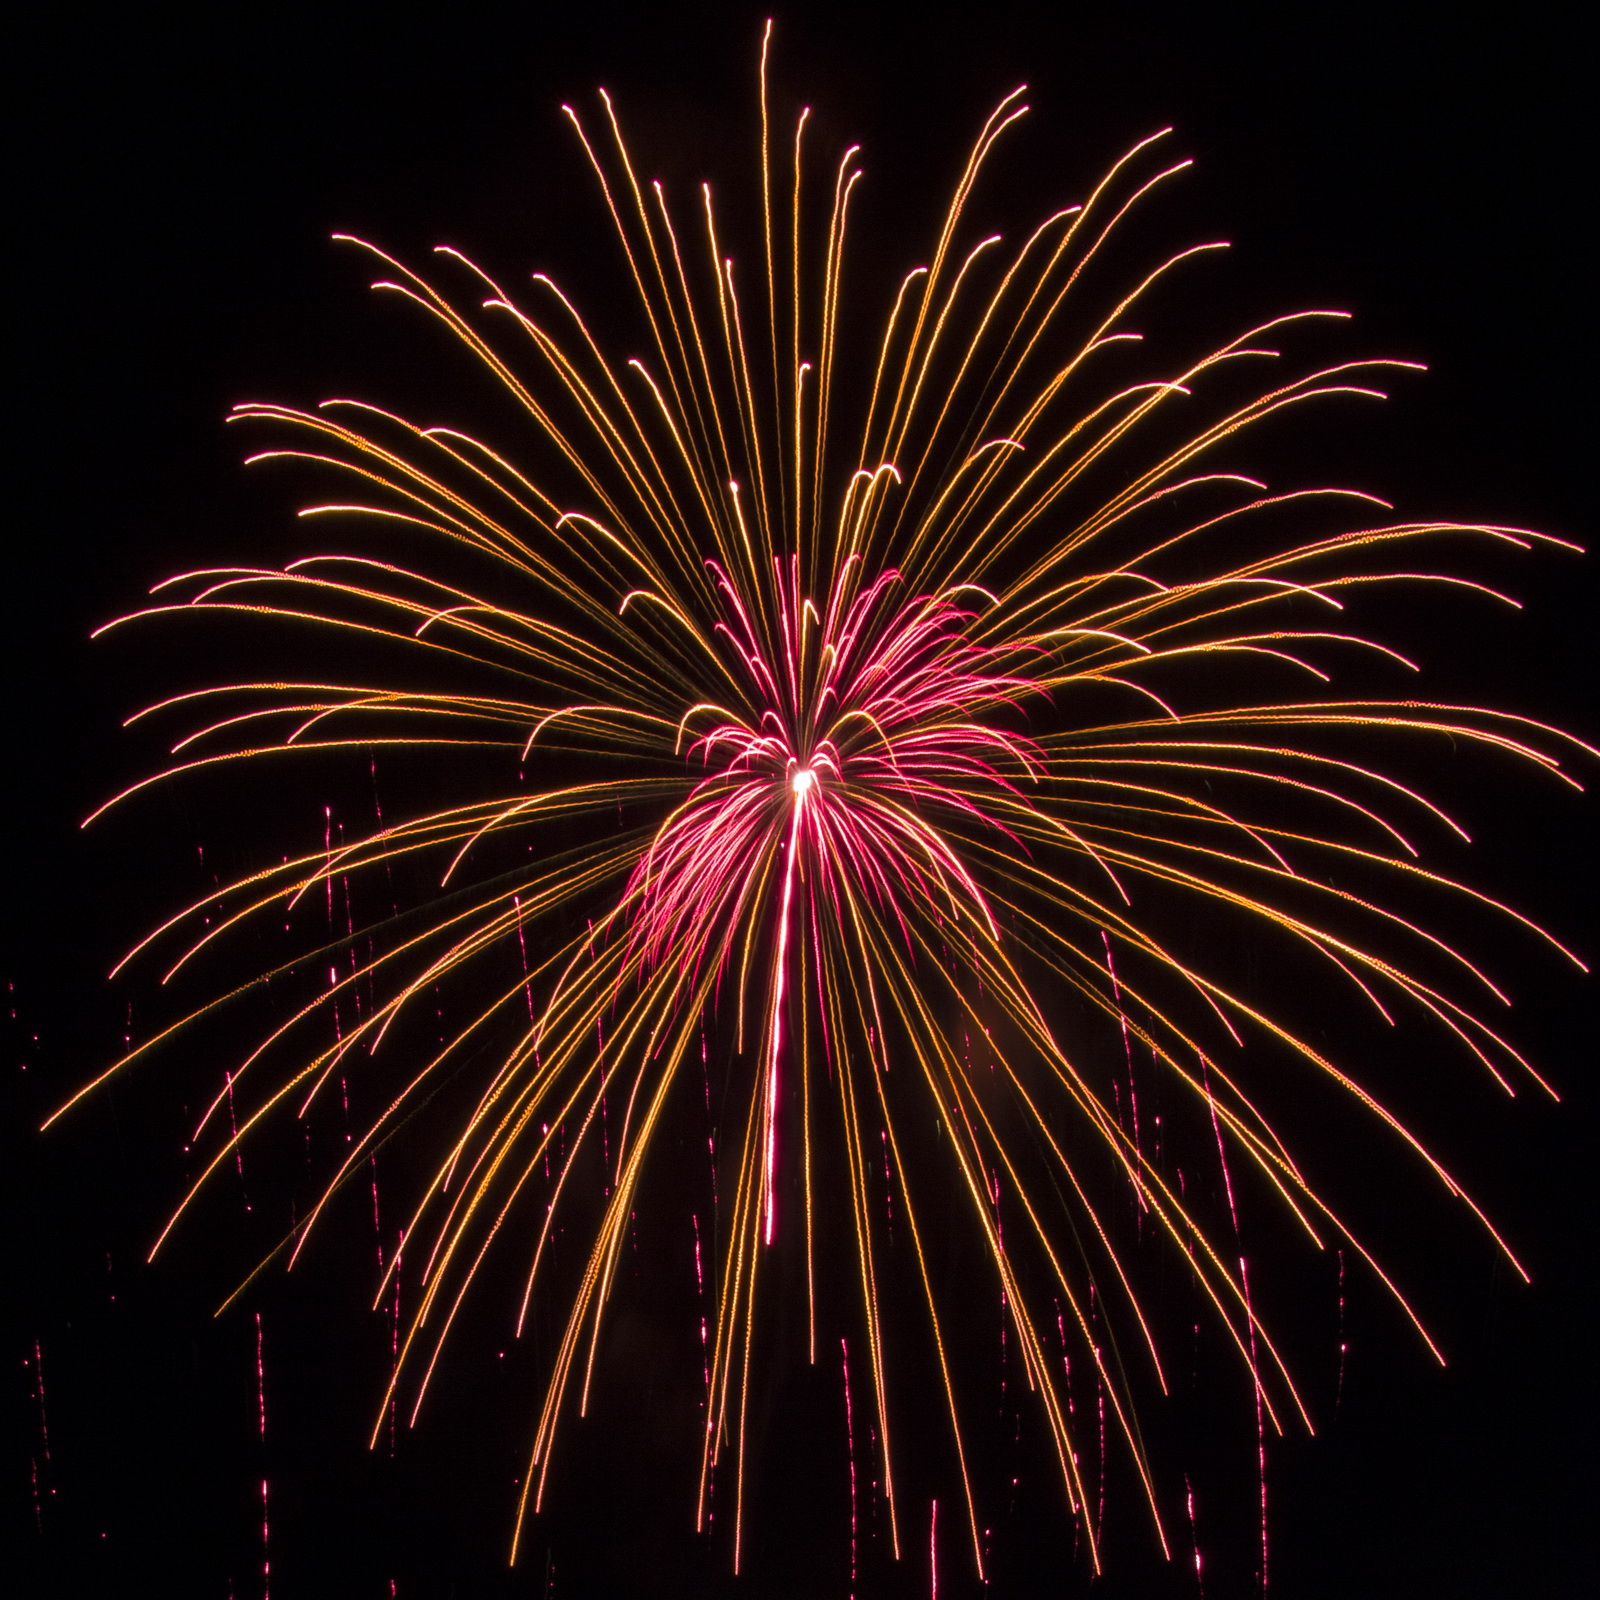 Massachusetts Fireworks go2.guide gold and fuscia explosion